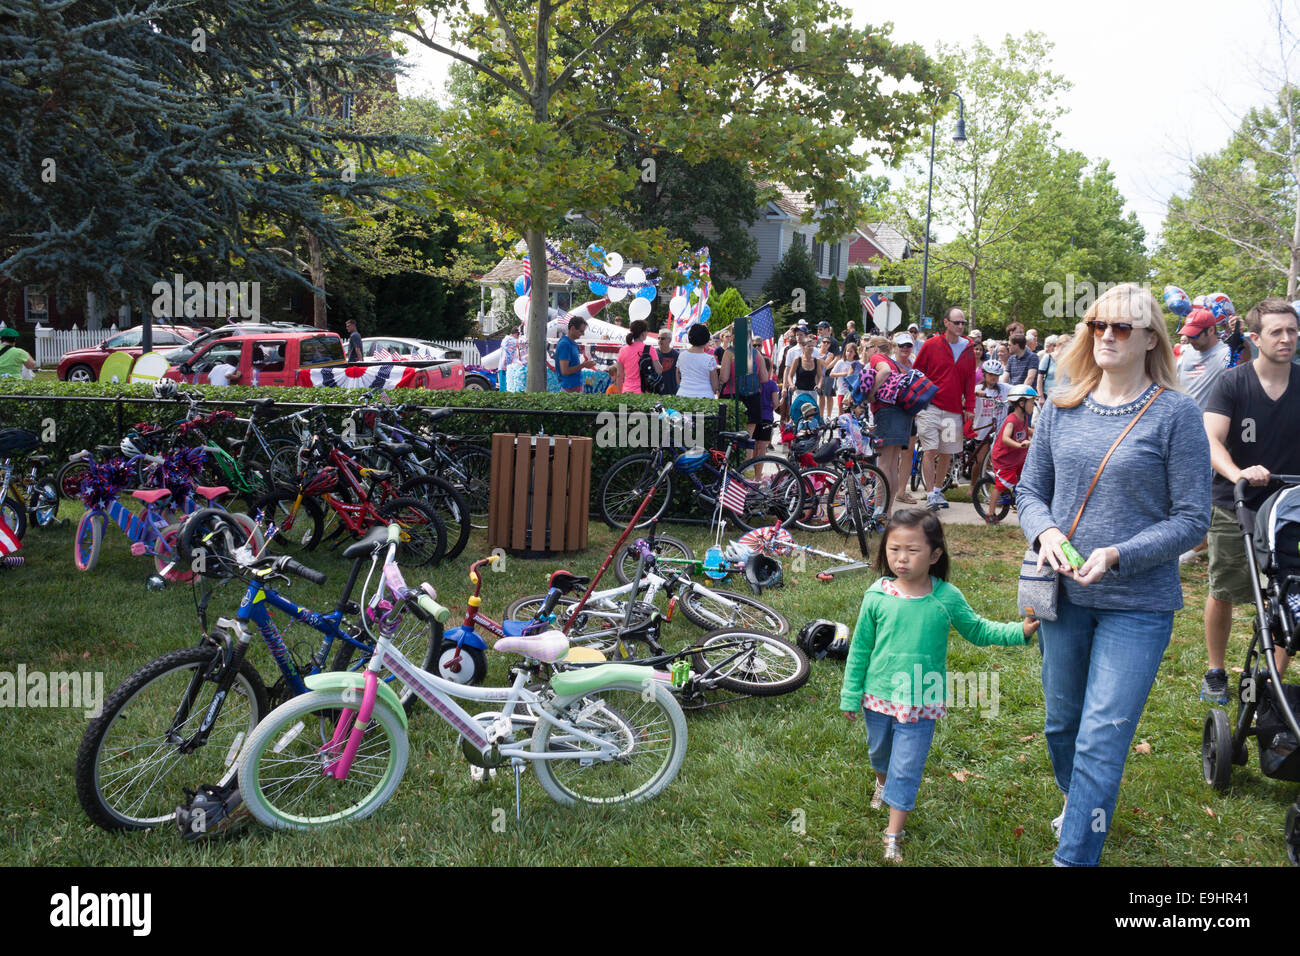 Fourth of July Community Festival - Stock Image